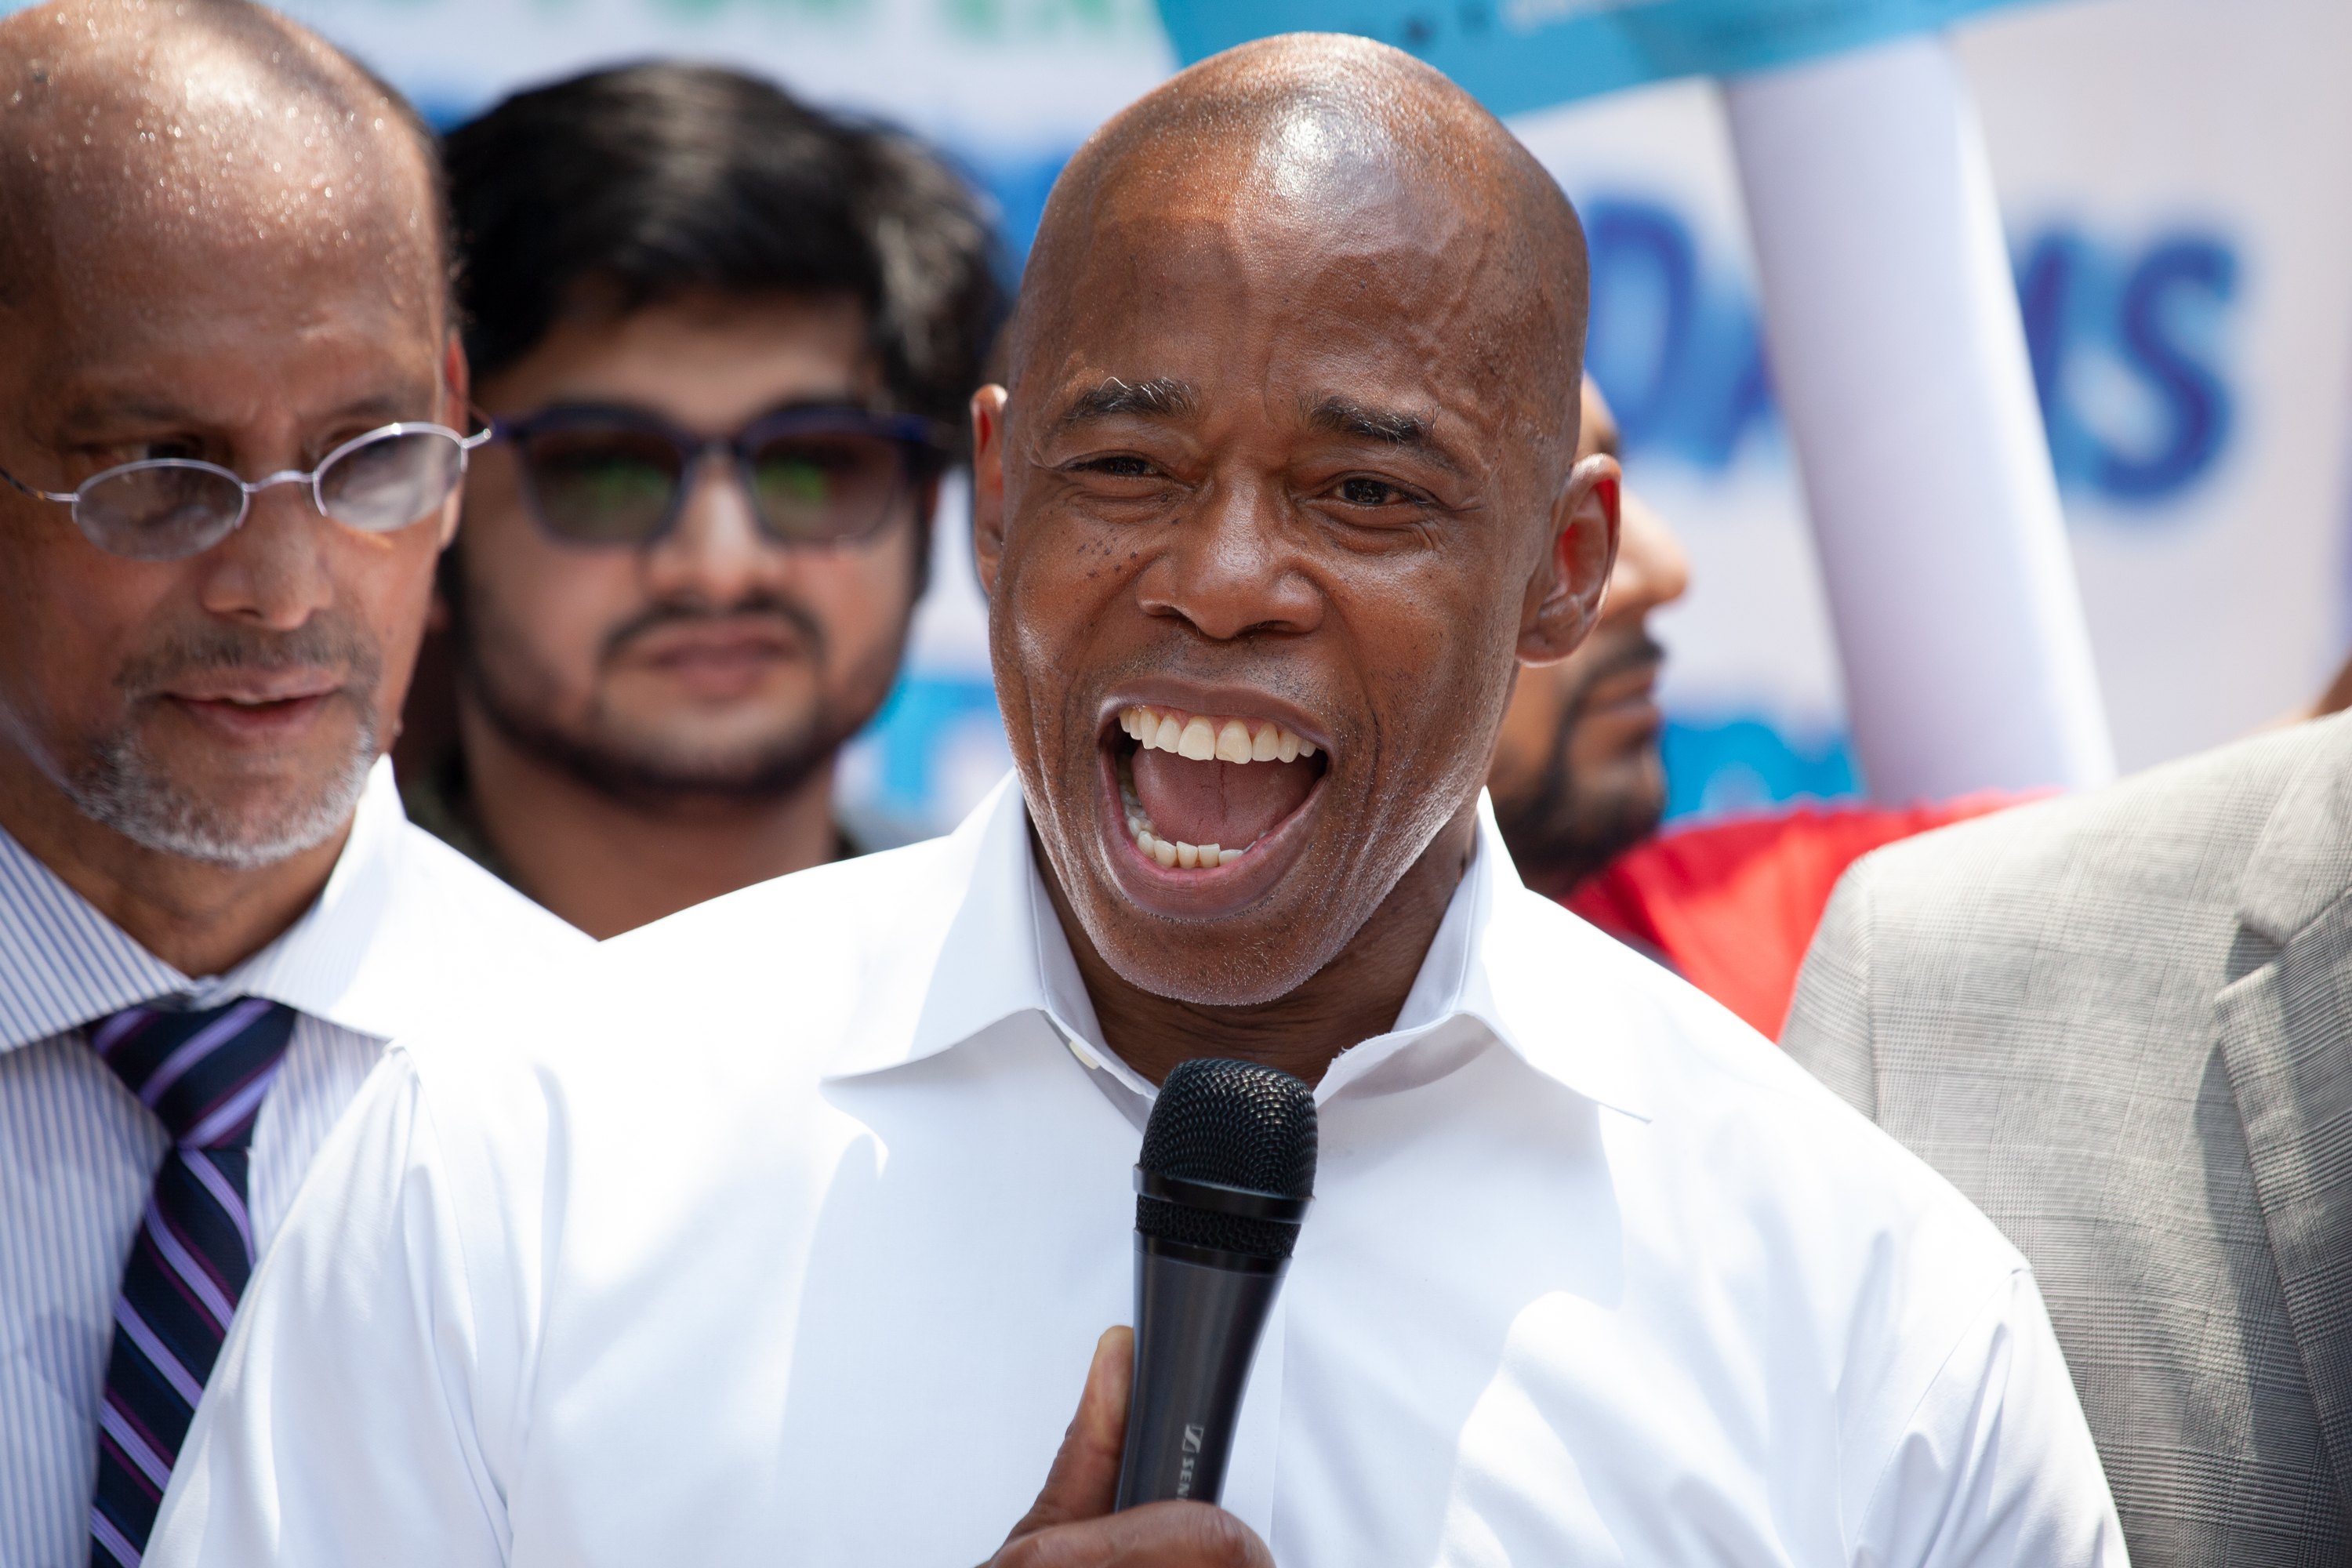 Brooklyn borough president and mayoral candidate Eric Adams speaks at a campaign rally in Jackson Heights, June 7, 2021.